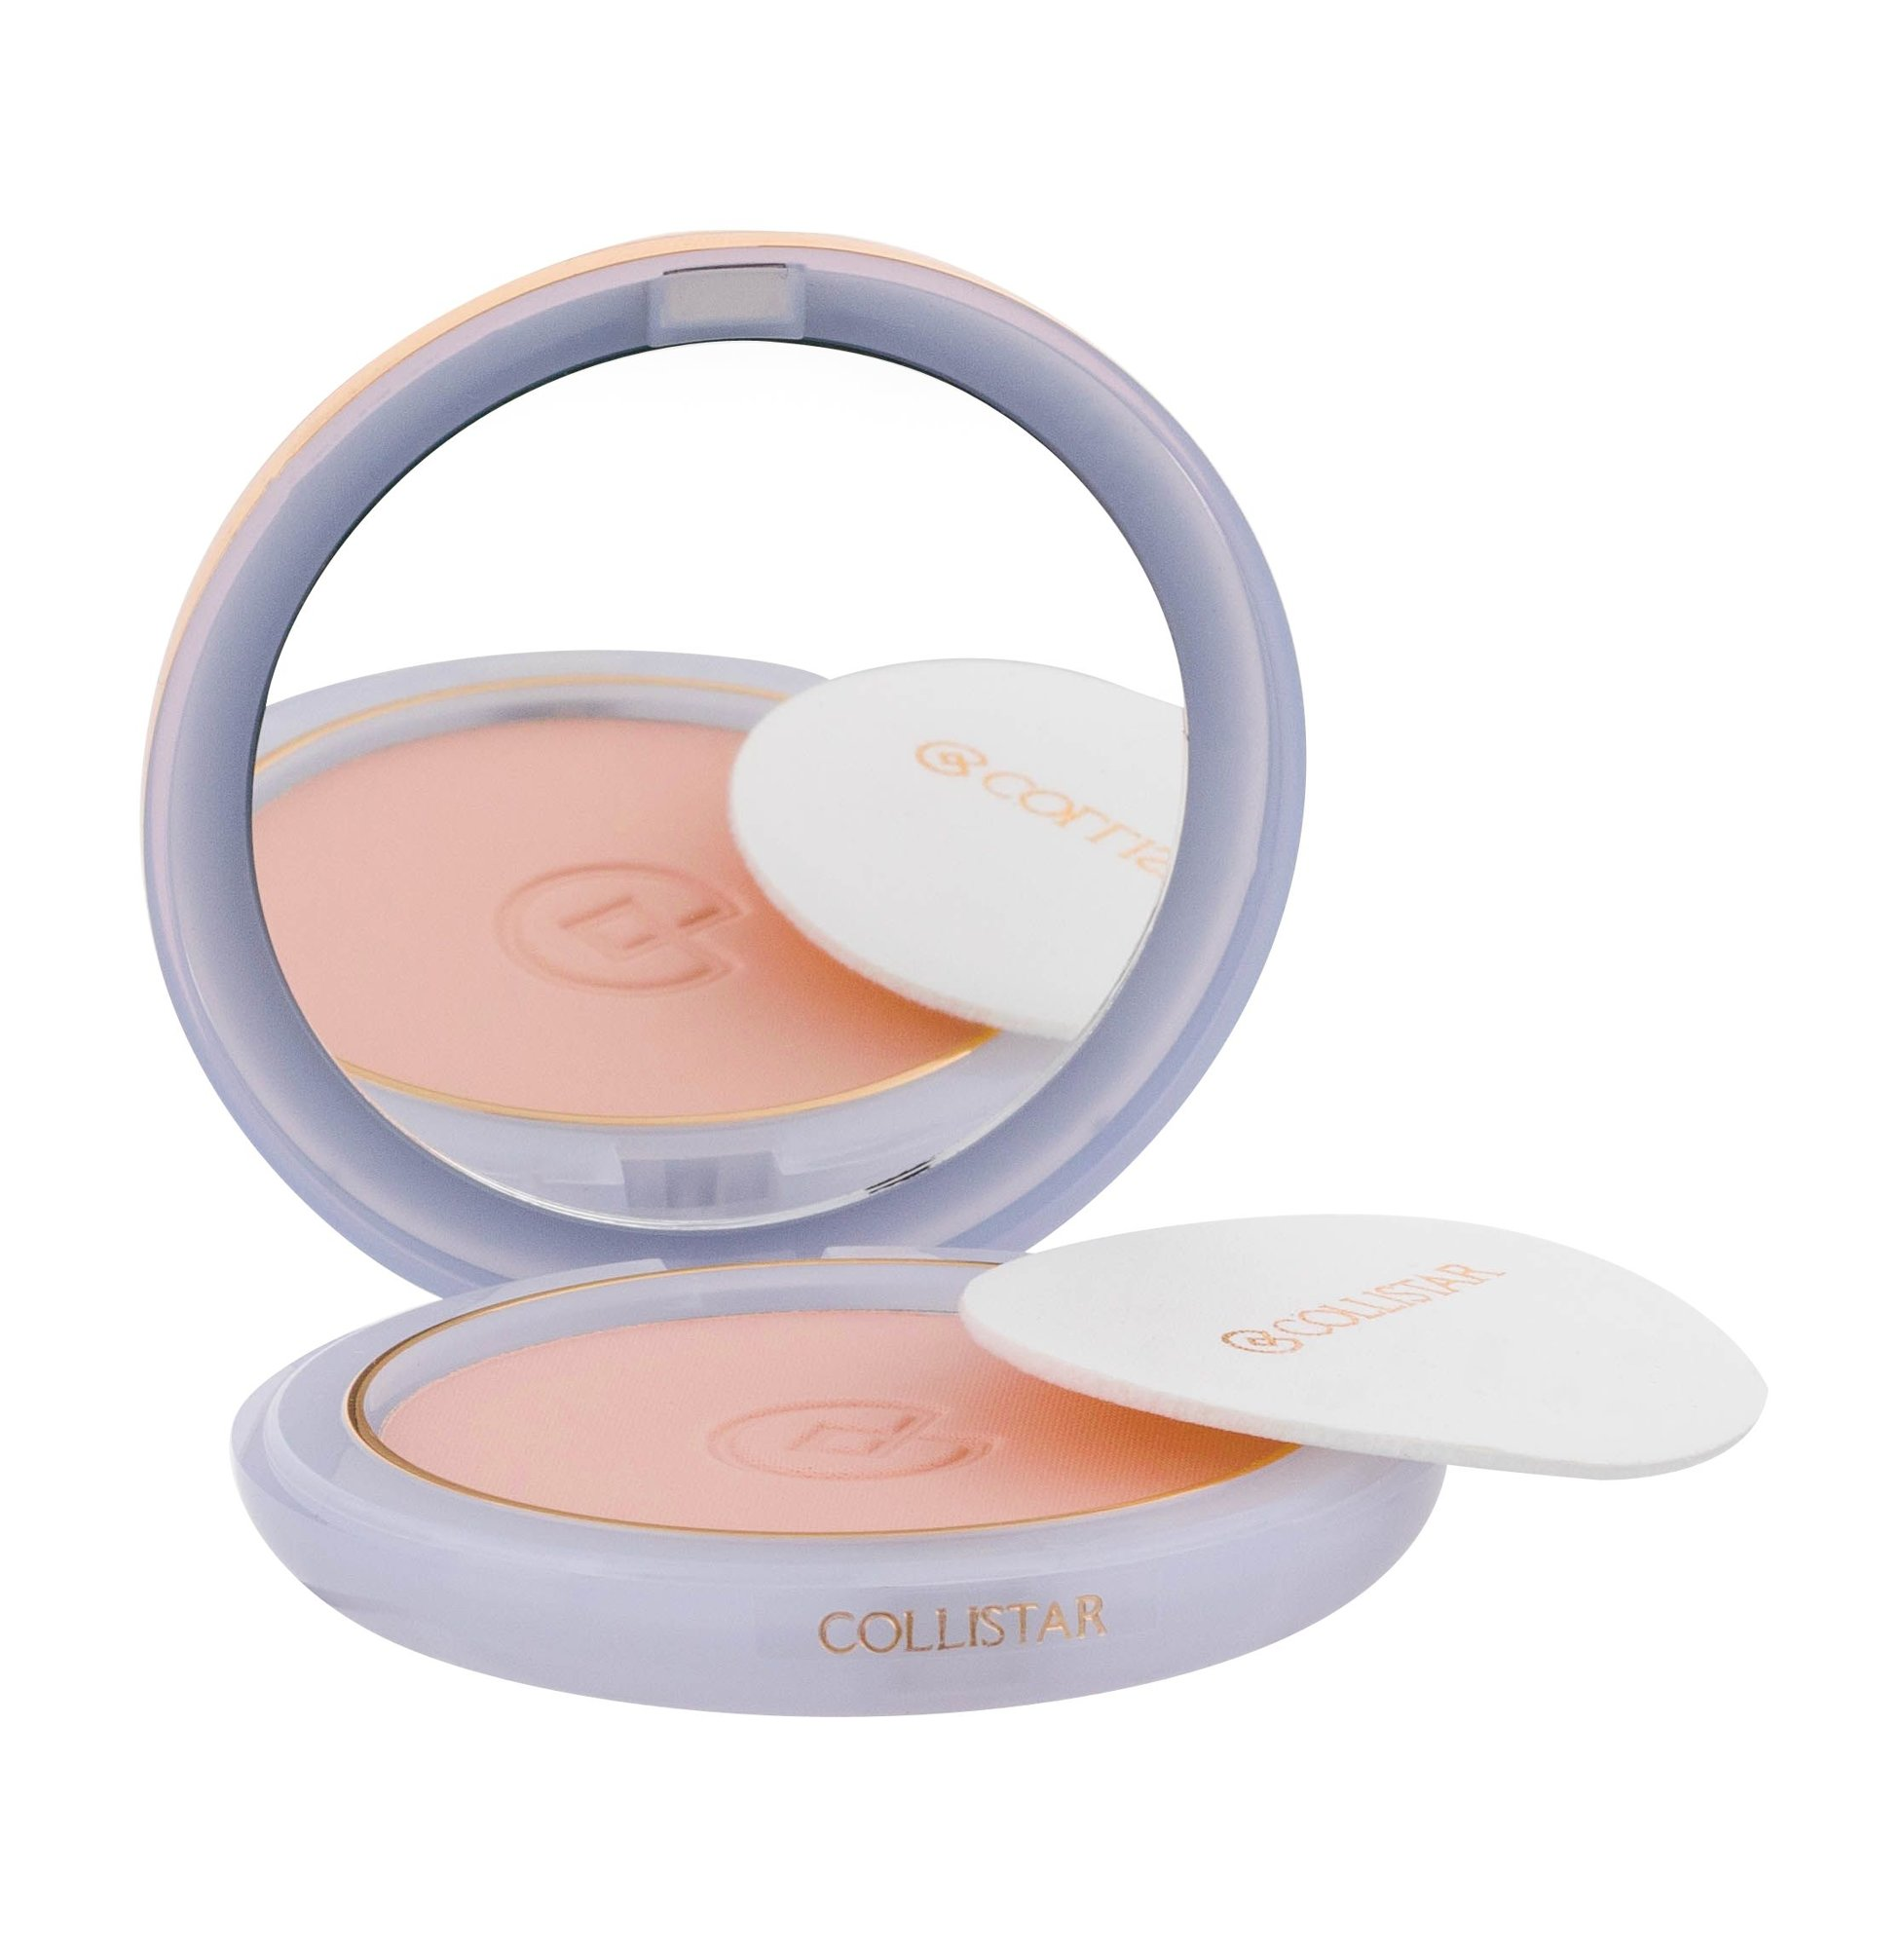 Collistar Silk Effect Compact Powder Cosmetic 7ml 2 Honey